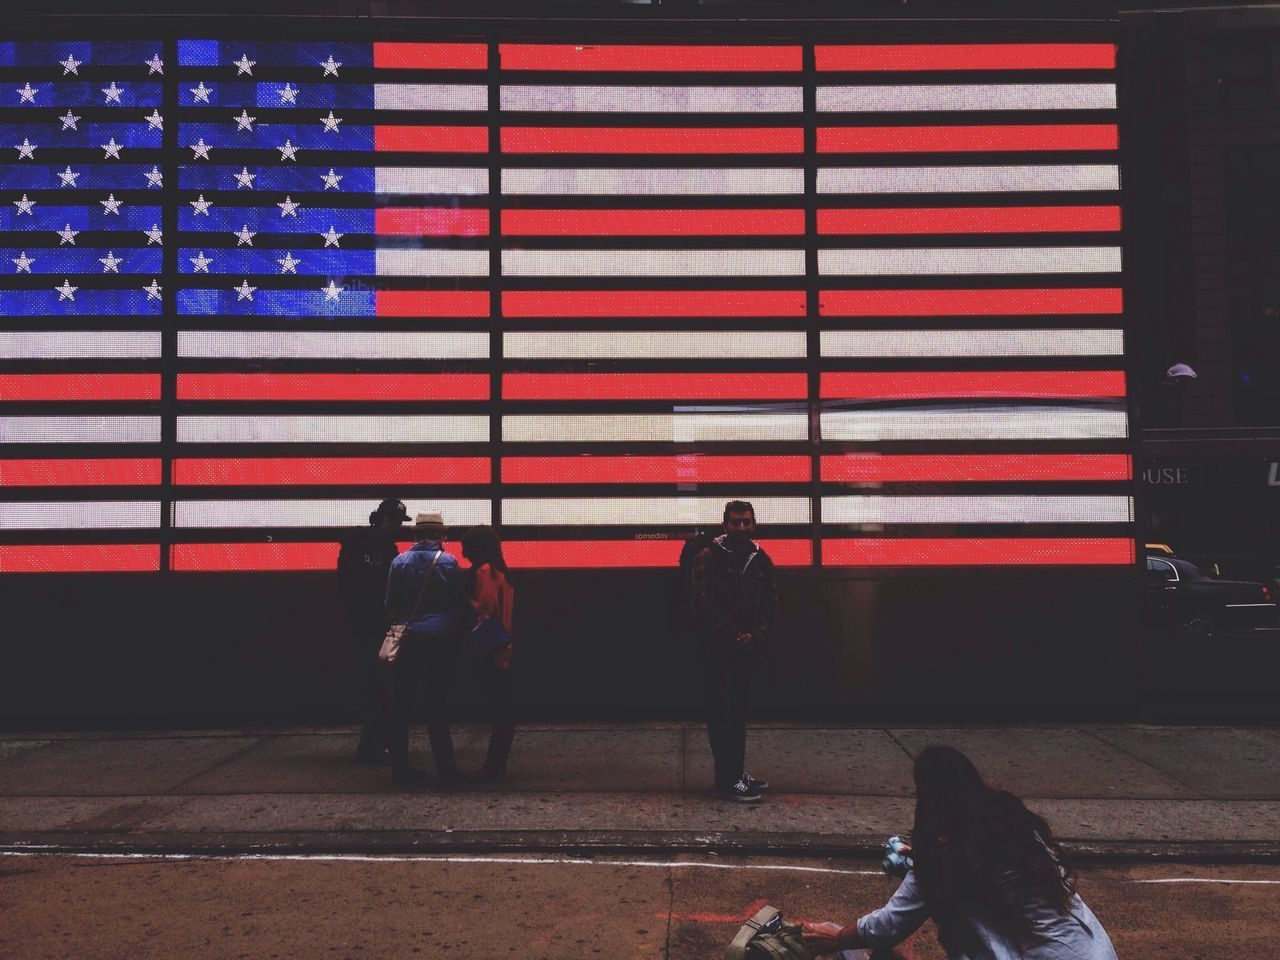 flag, patriotism, striped, real people, men, outdoors, stars and stripes, transportation, women, standing, day, lifestyles, built structure, travel destinations, architecture, people